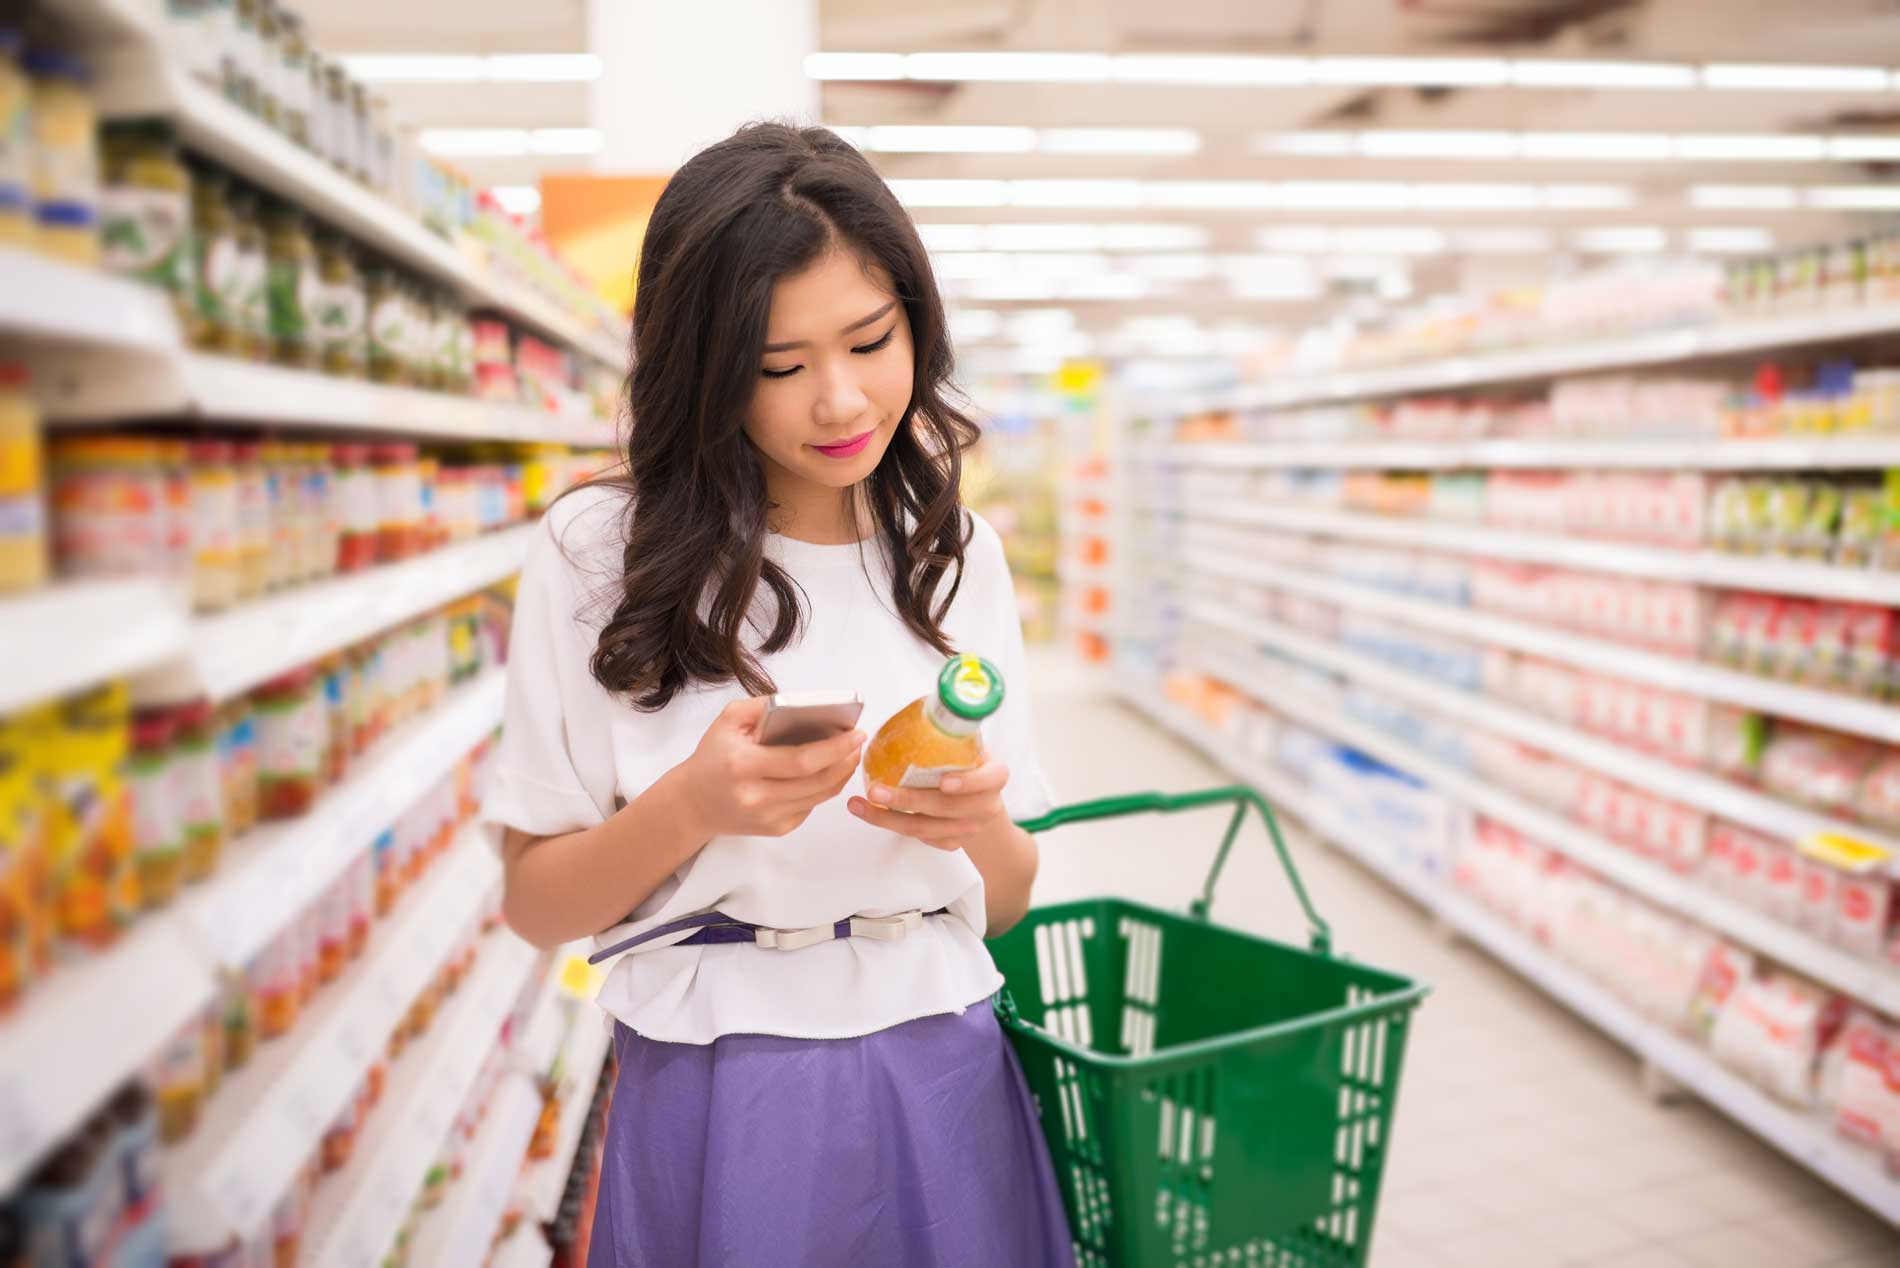 eCommerce Meets the Grocery Aisle: Kroger's New Digital Shopping Experience